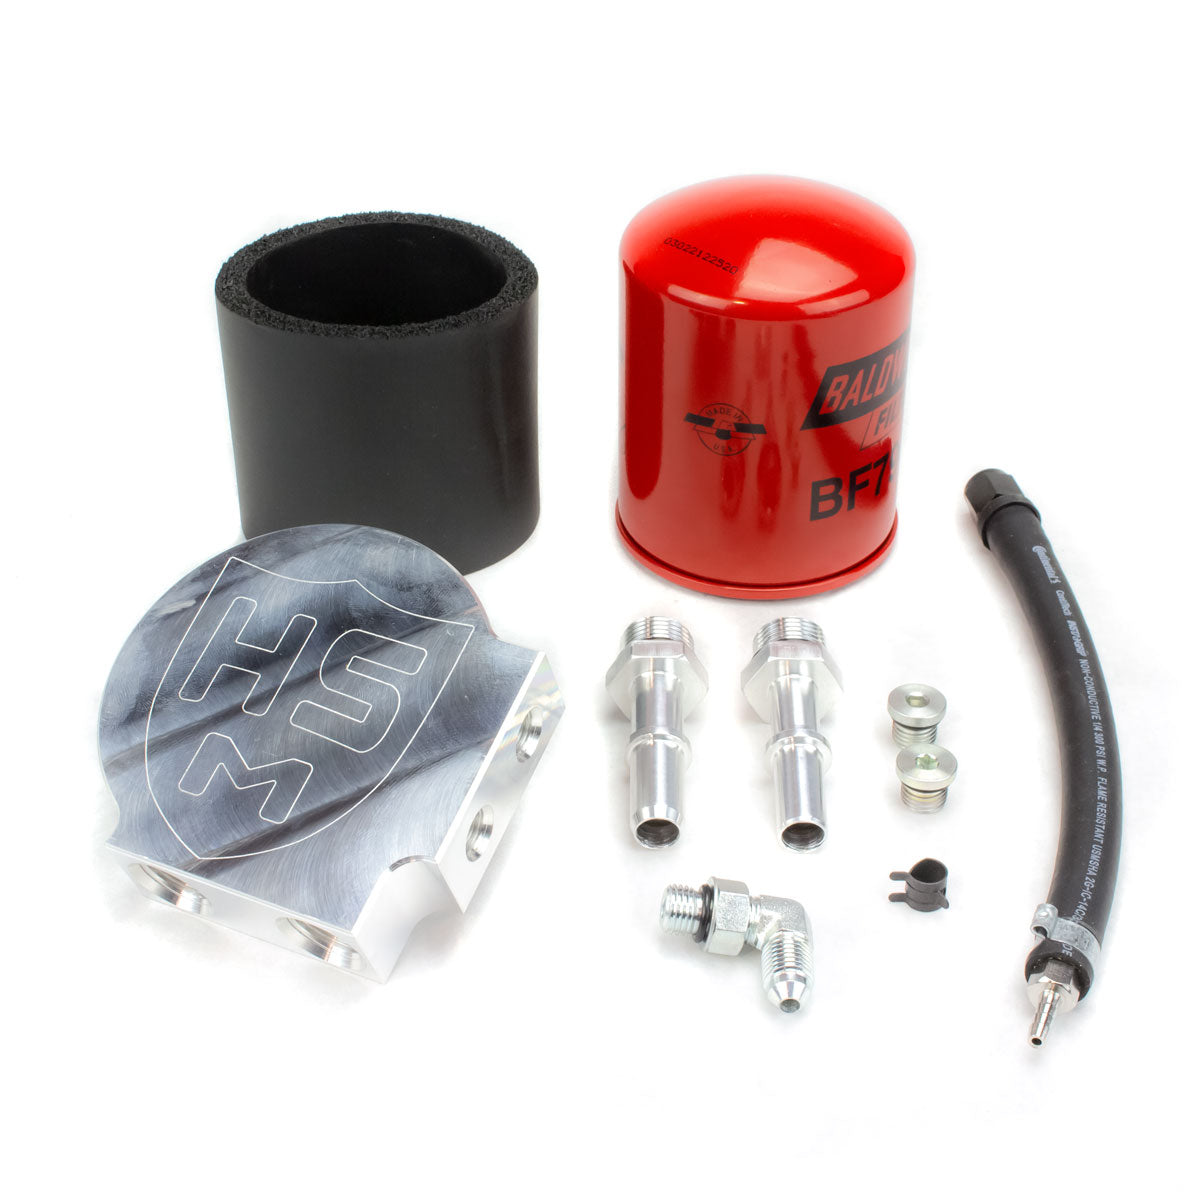 2011-2021 Ford 6.7L Fuel Filter Conversion Kit